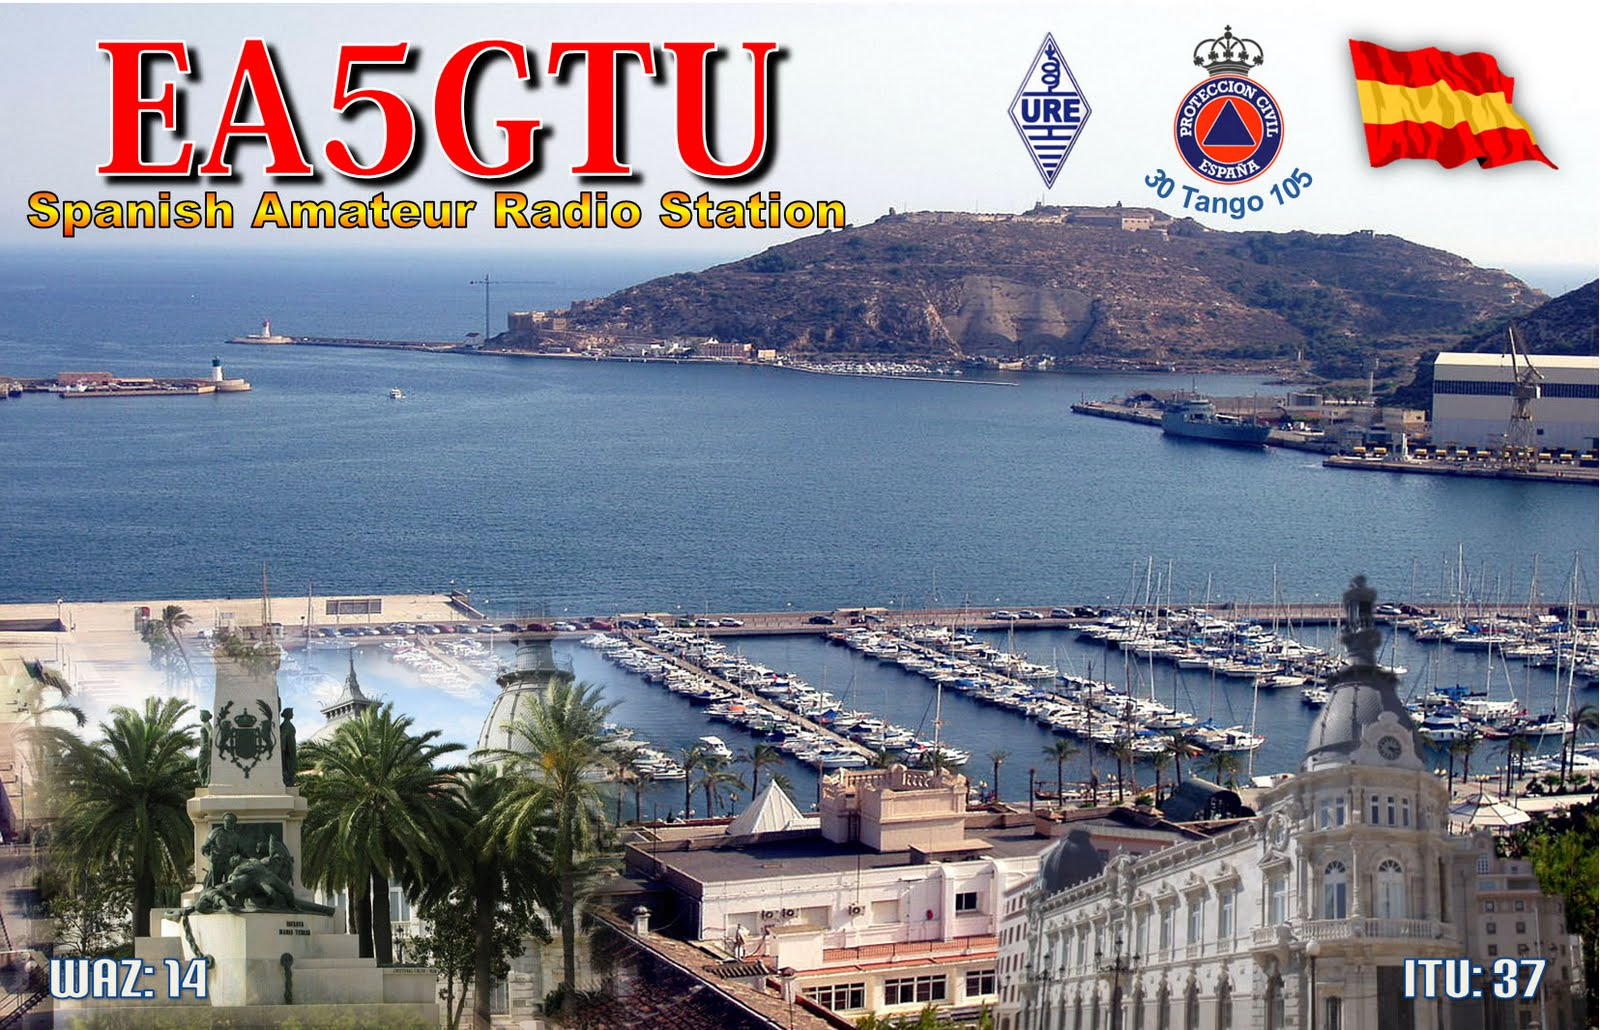 Esta es mi QSL